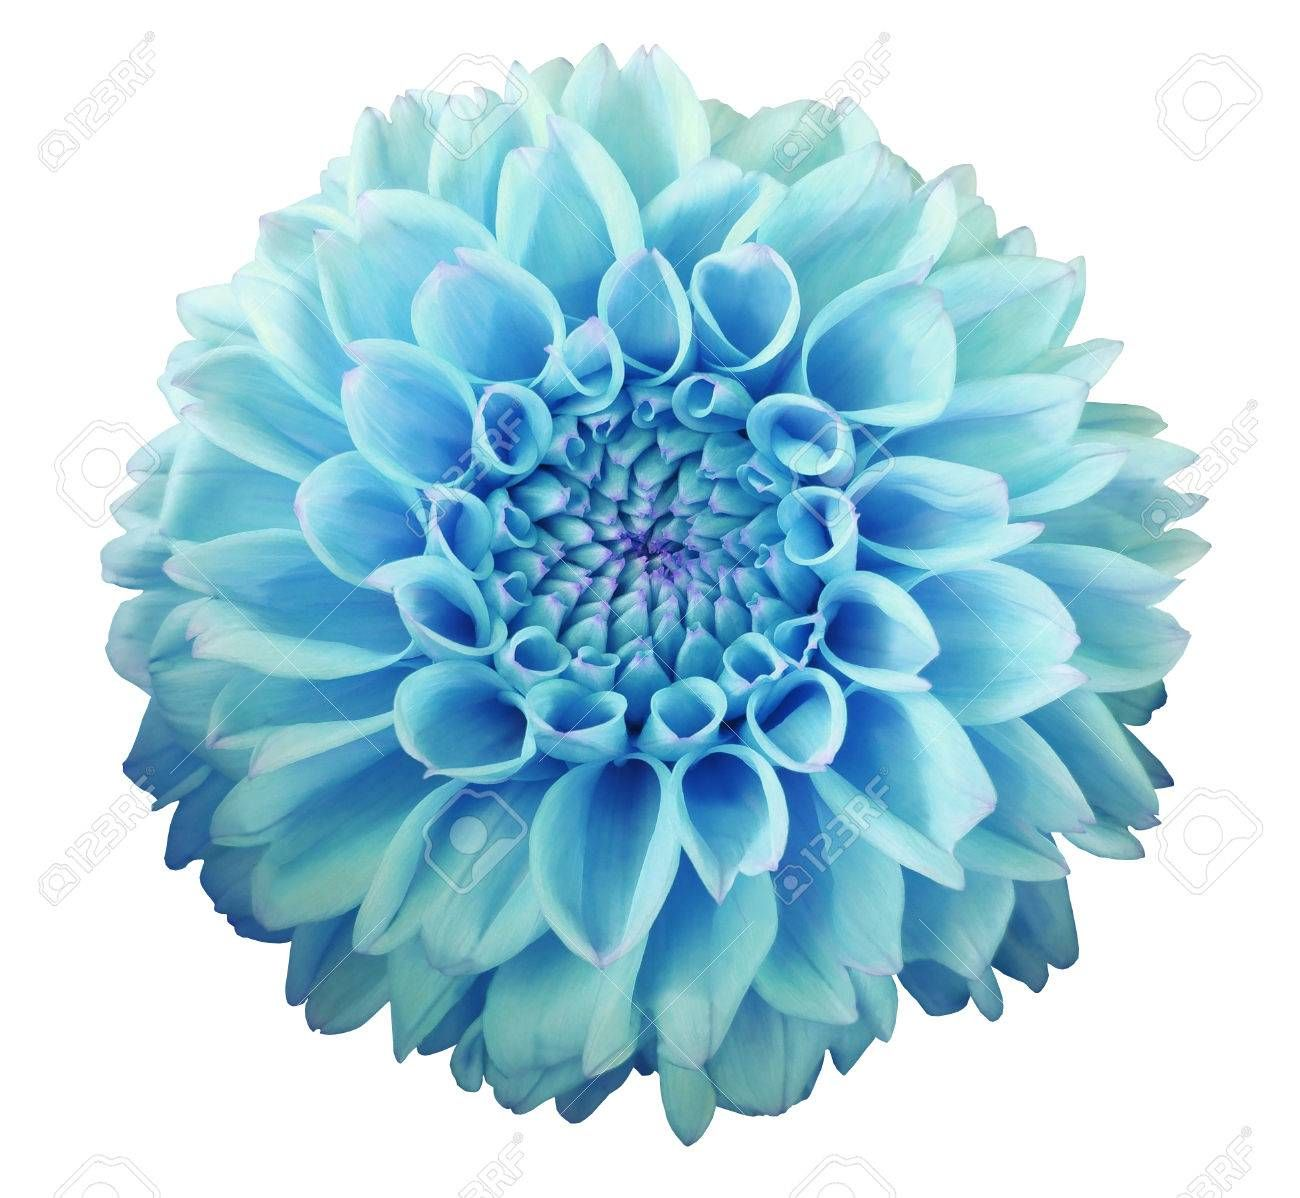 Blue Dahlia Flower White Background Isolated With Clipping Path Closeup For Design Nature Dahlia Flower Blue Dahlia Dahlia